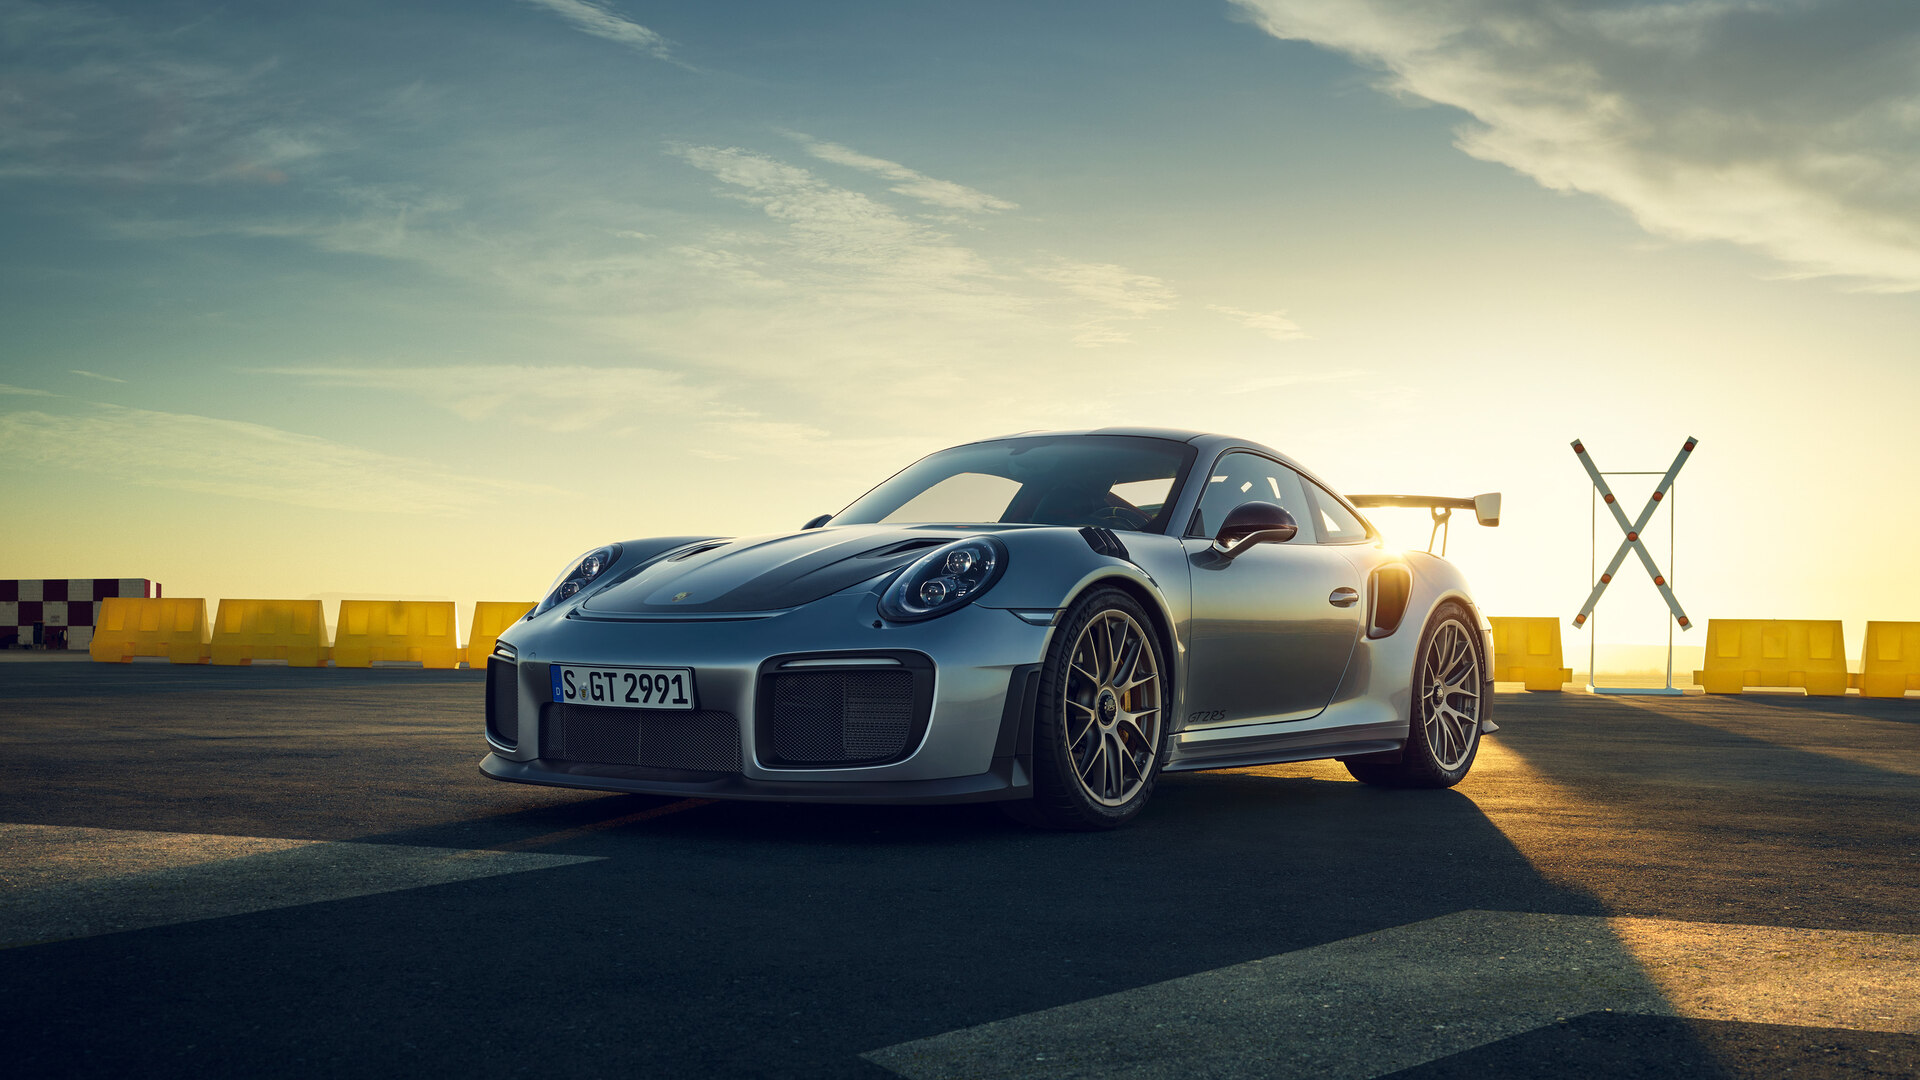 Porsche Hd Wallpapers 1080p: 1920x1080 Porsche 911 GT2 RS 4k Laptop Full HD 1080P HD 4k